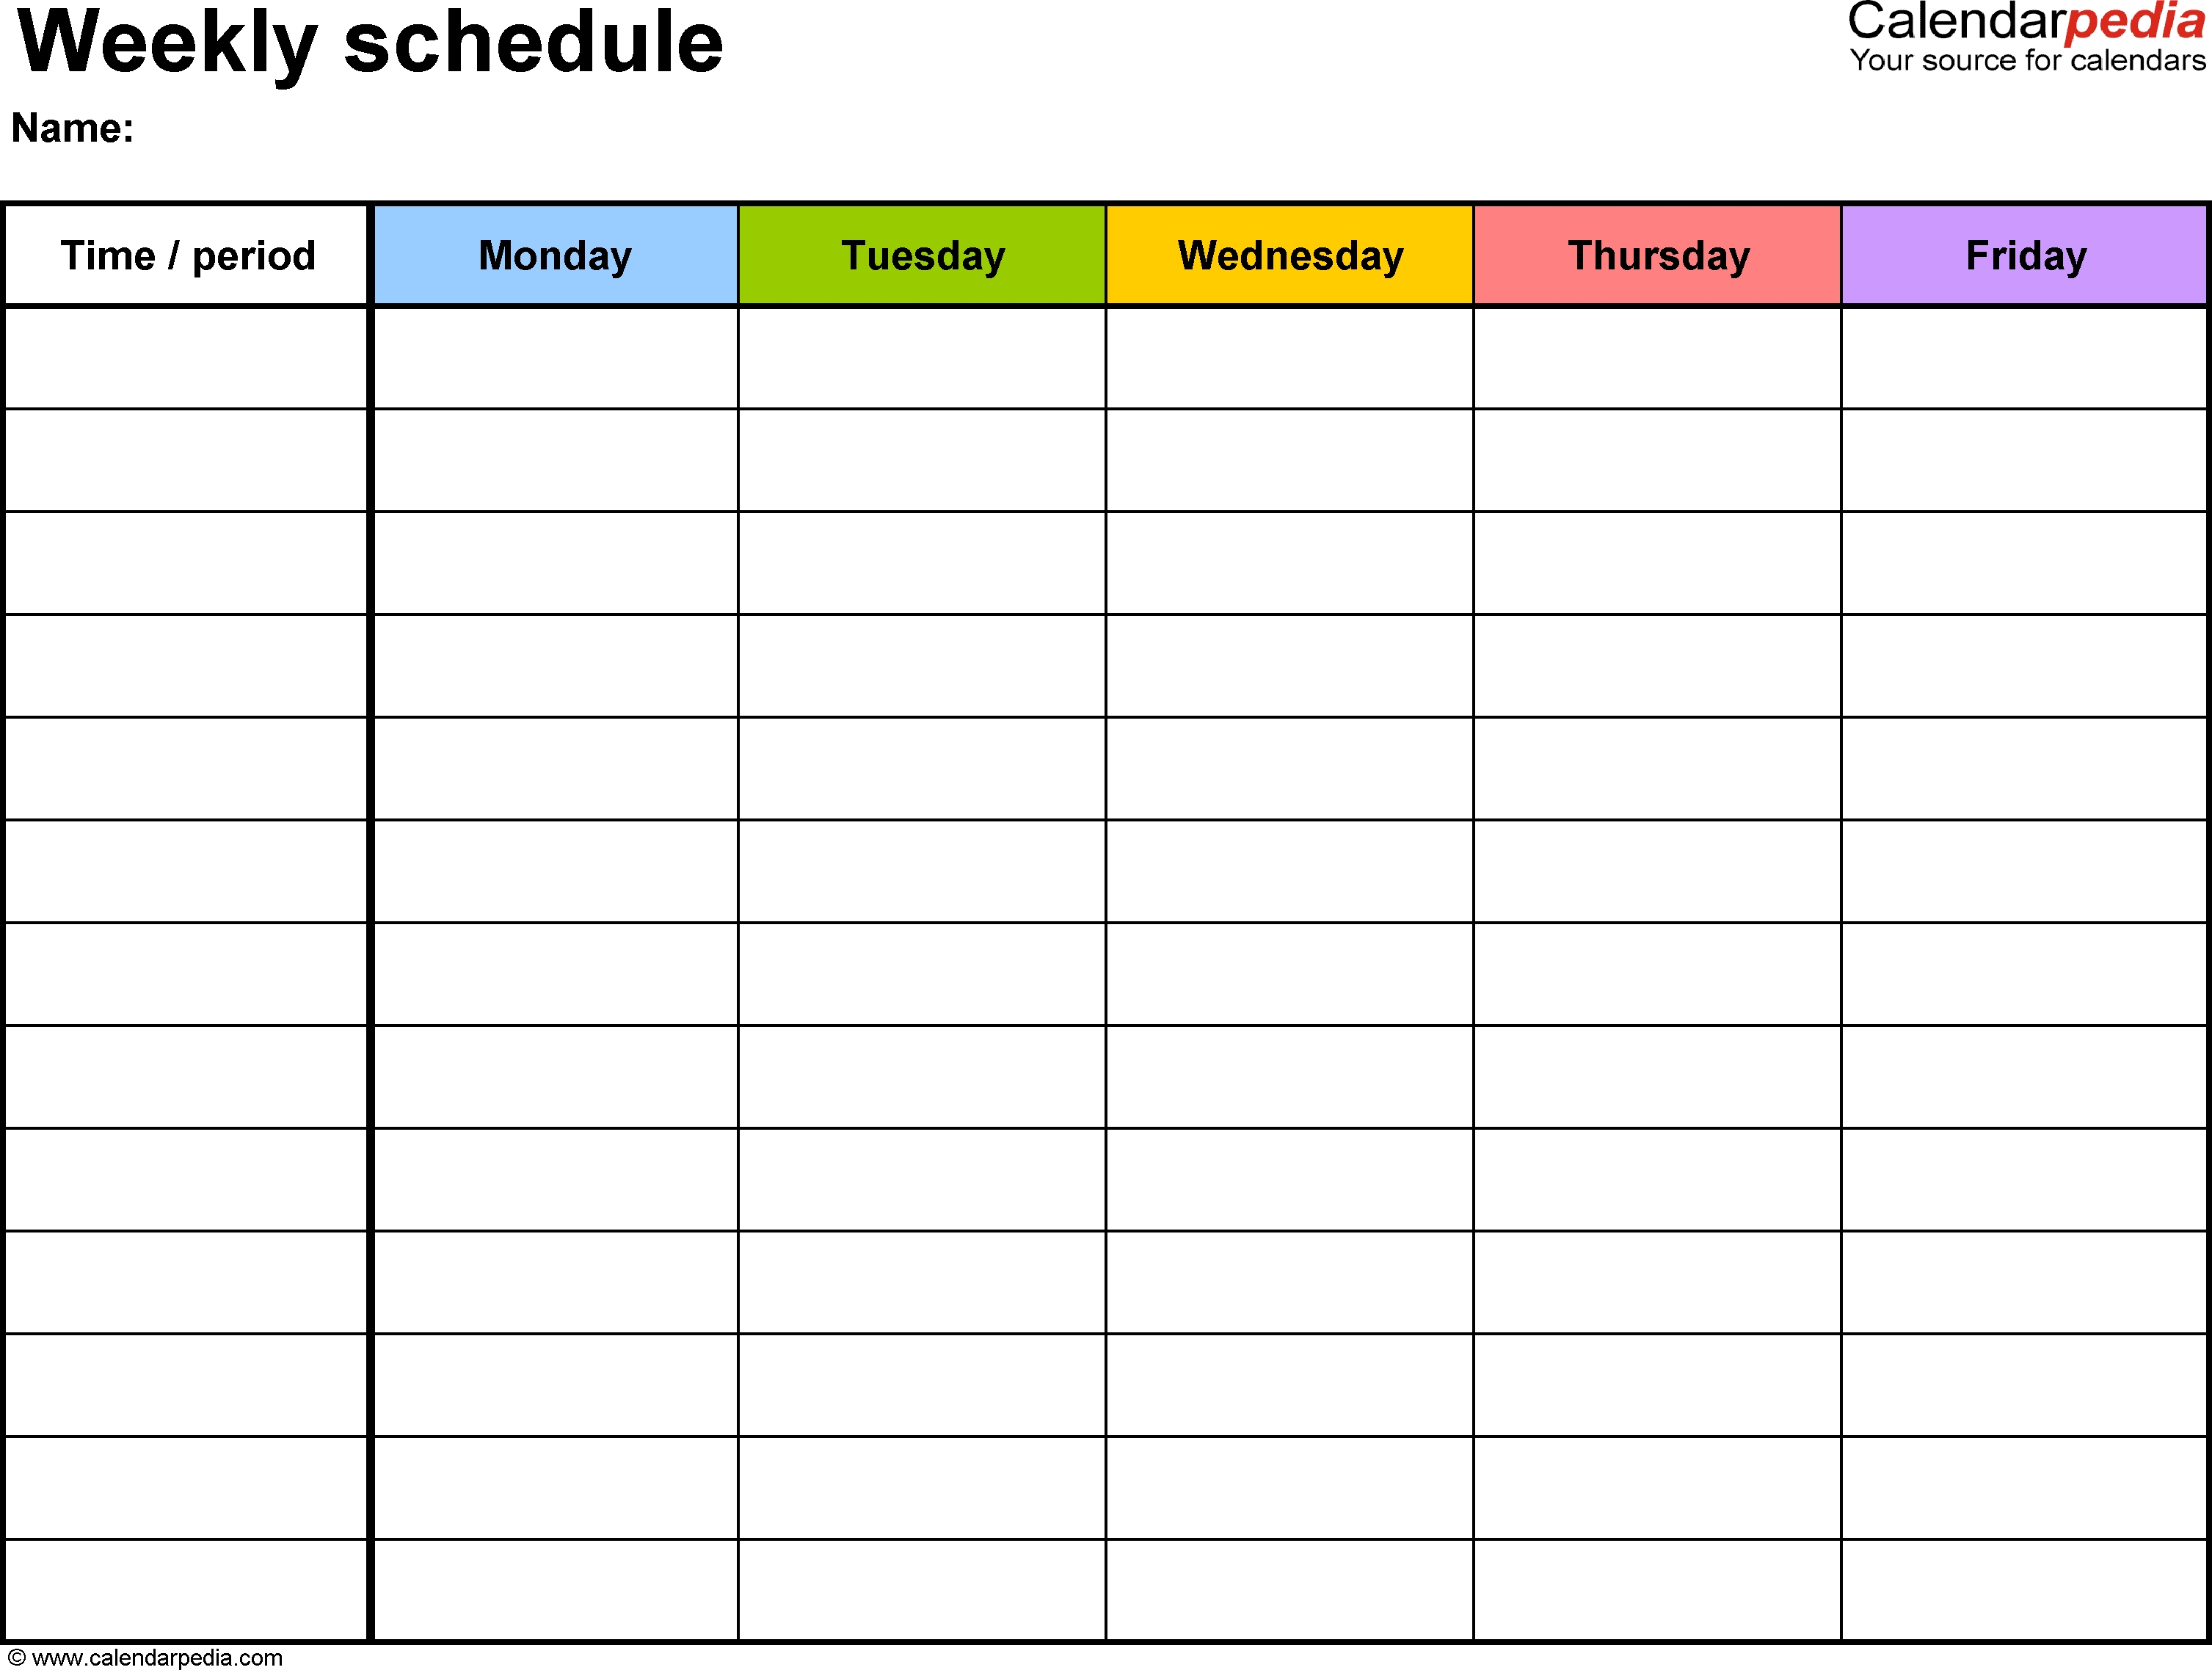 Weekly Schedule Template For Word Version 1: Landscape, 1 Page  Weekly Printable Calendars With Time Slots